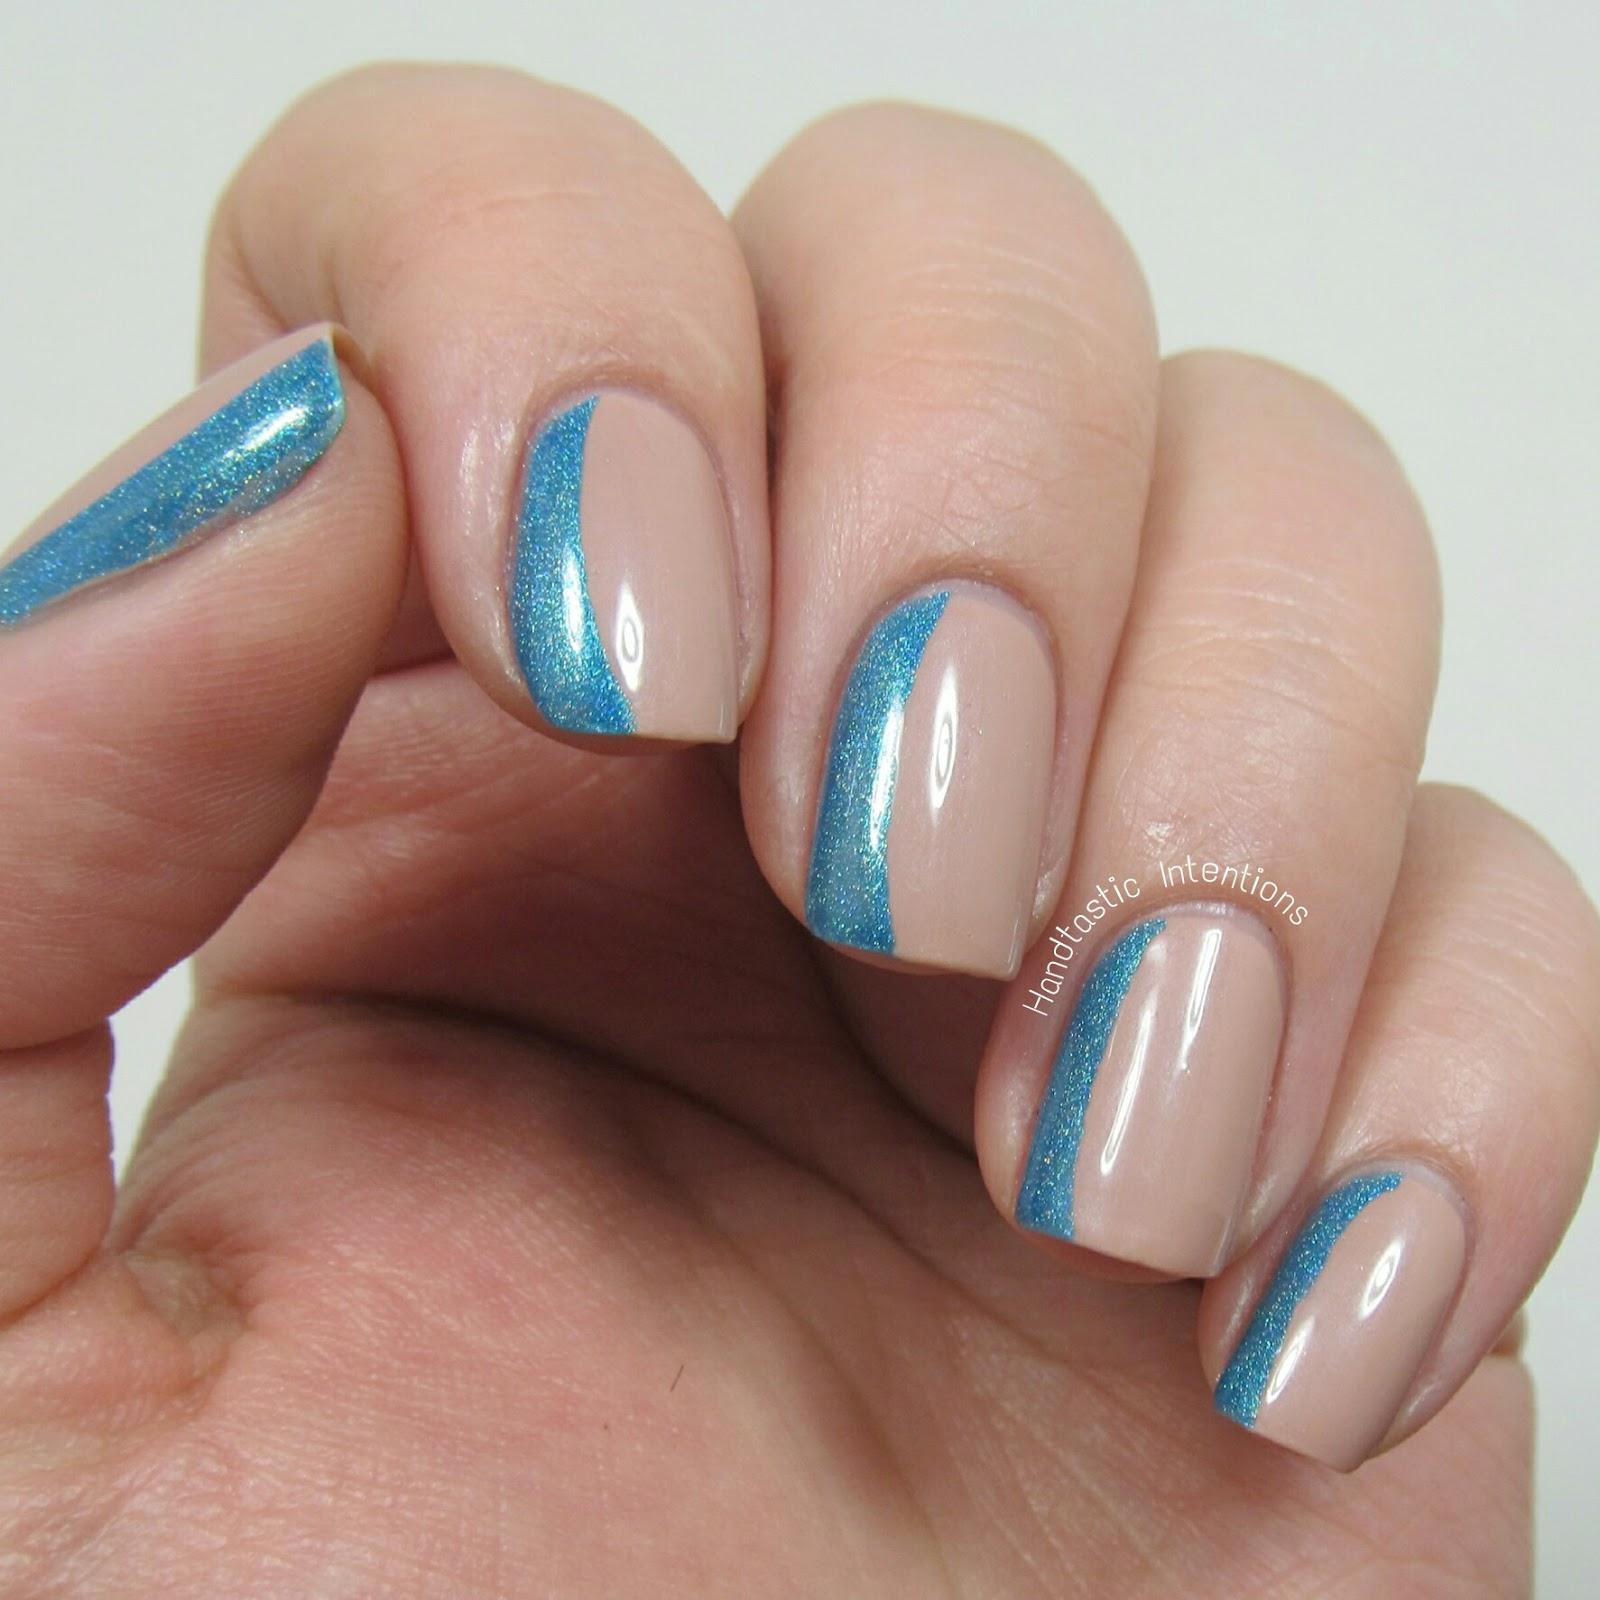 Handtastic Intentions: Side French Nail Art